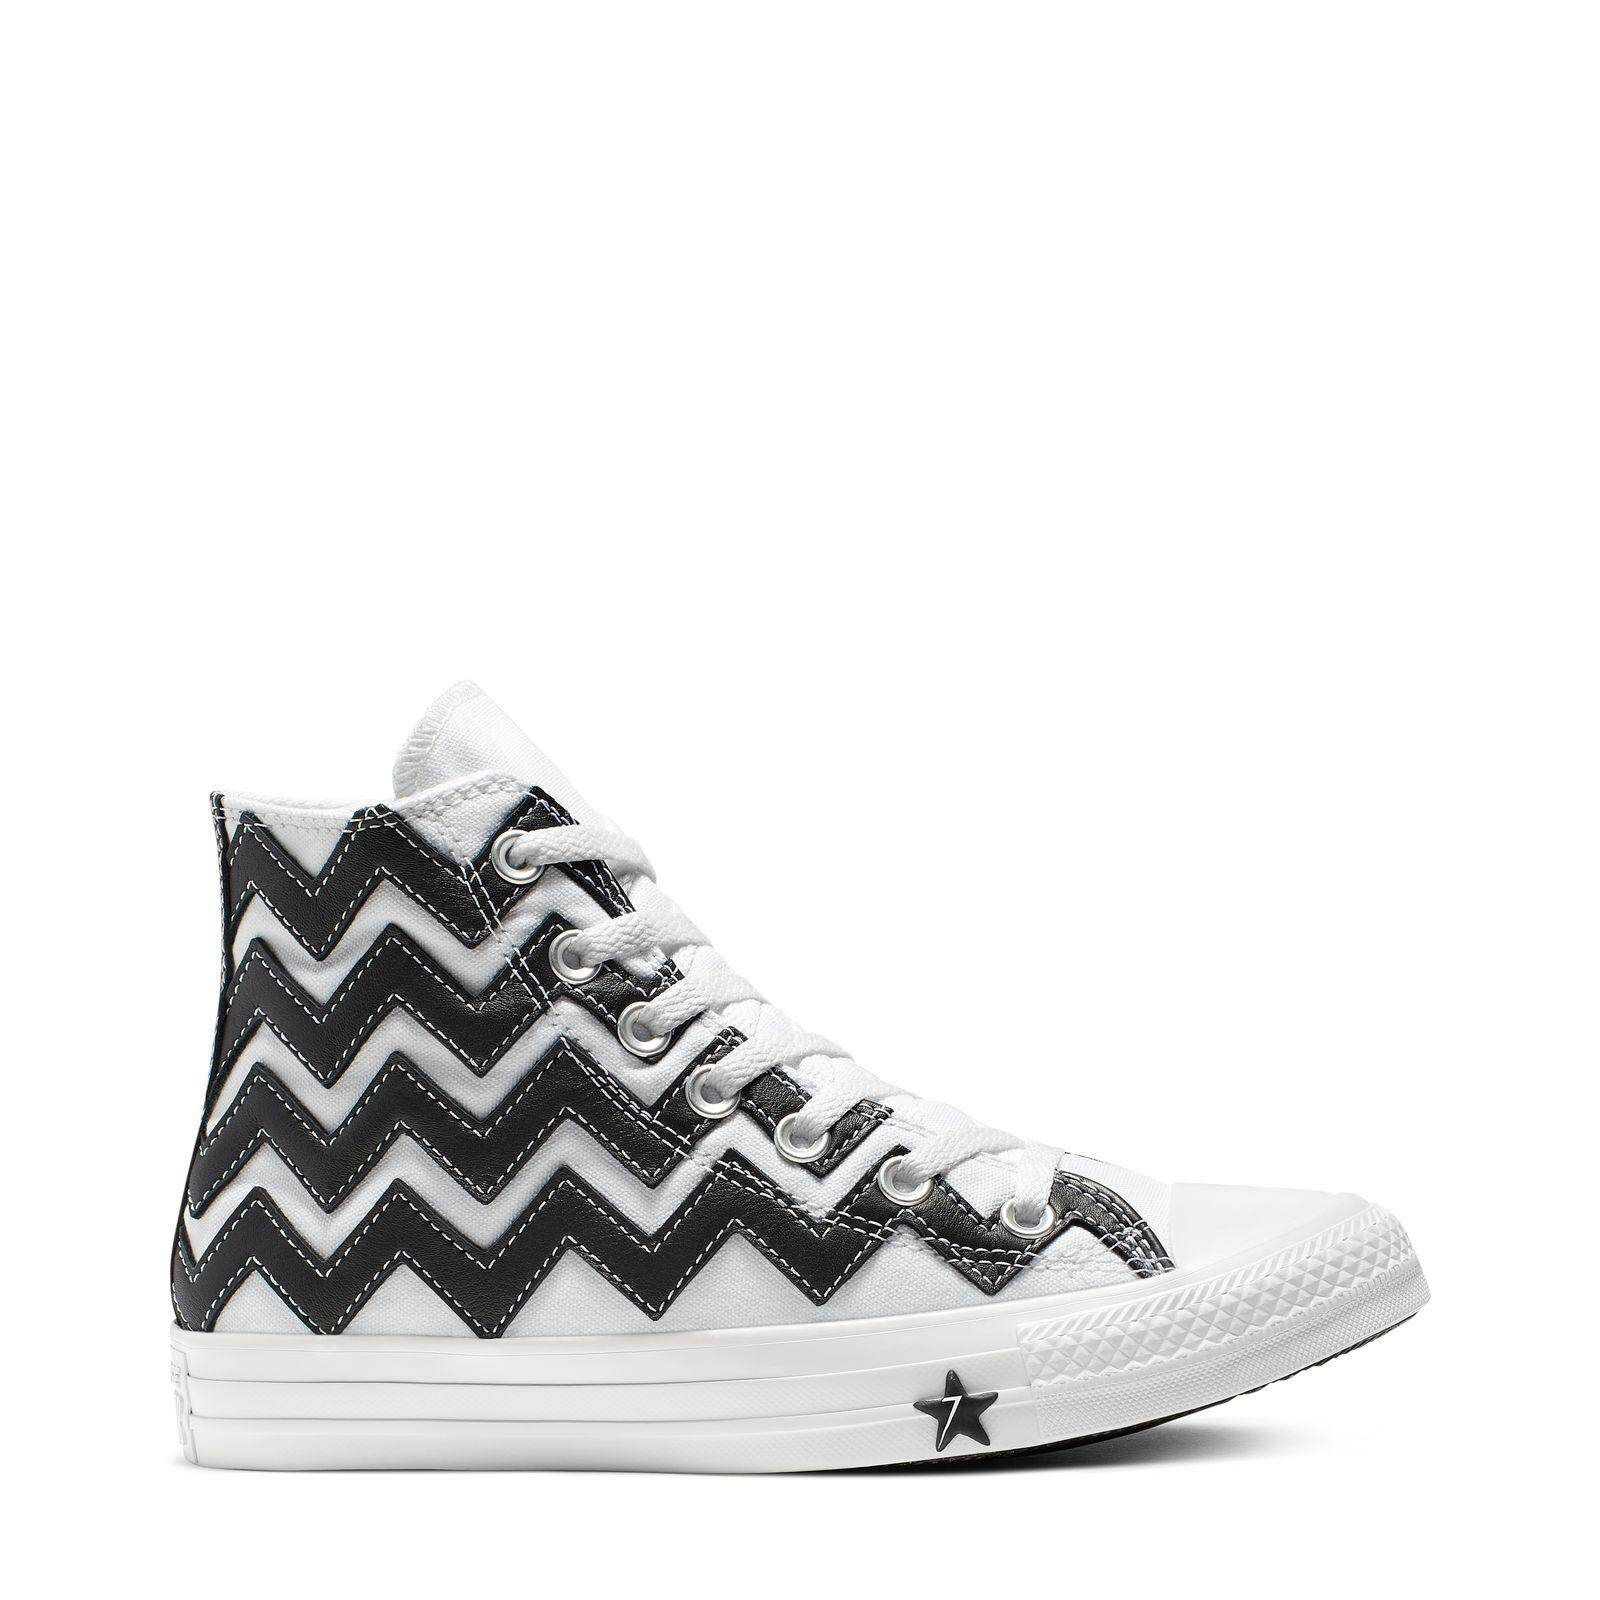 กระบี่ CONVERSE CHUCK TAYLOR ALL STAR MISSION-V - HI - WHITE/BLACK/WHITE - WOMEN - 565376C - 565376CF9BW